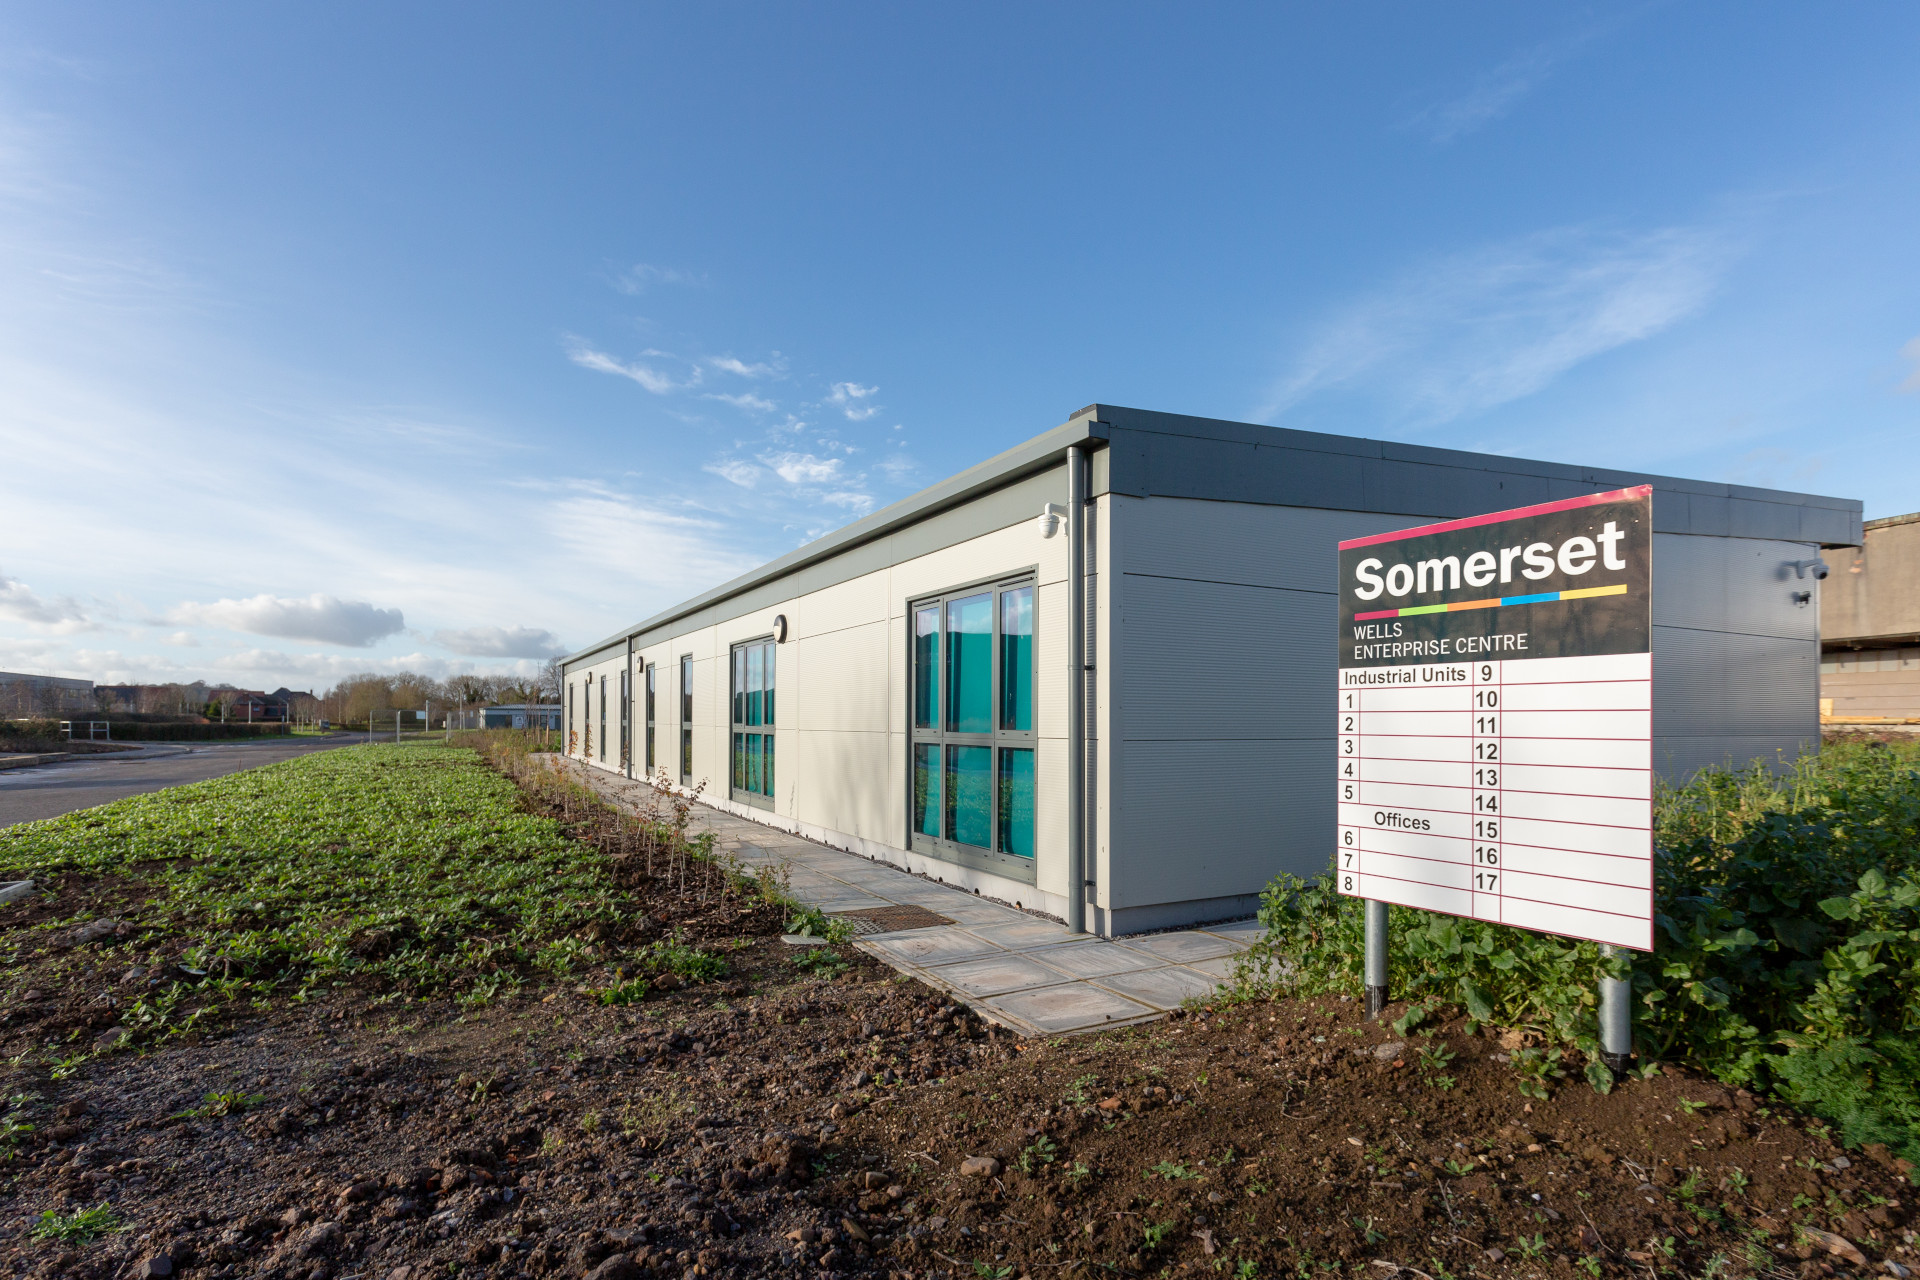 Somerset Enterprise Centres Image